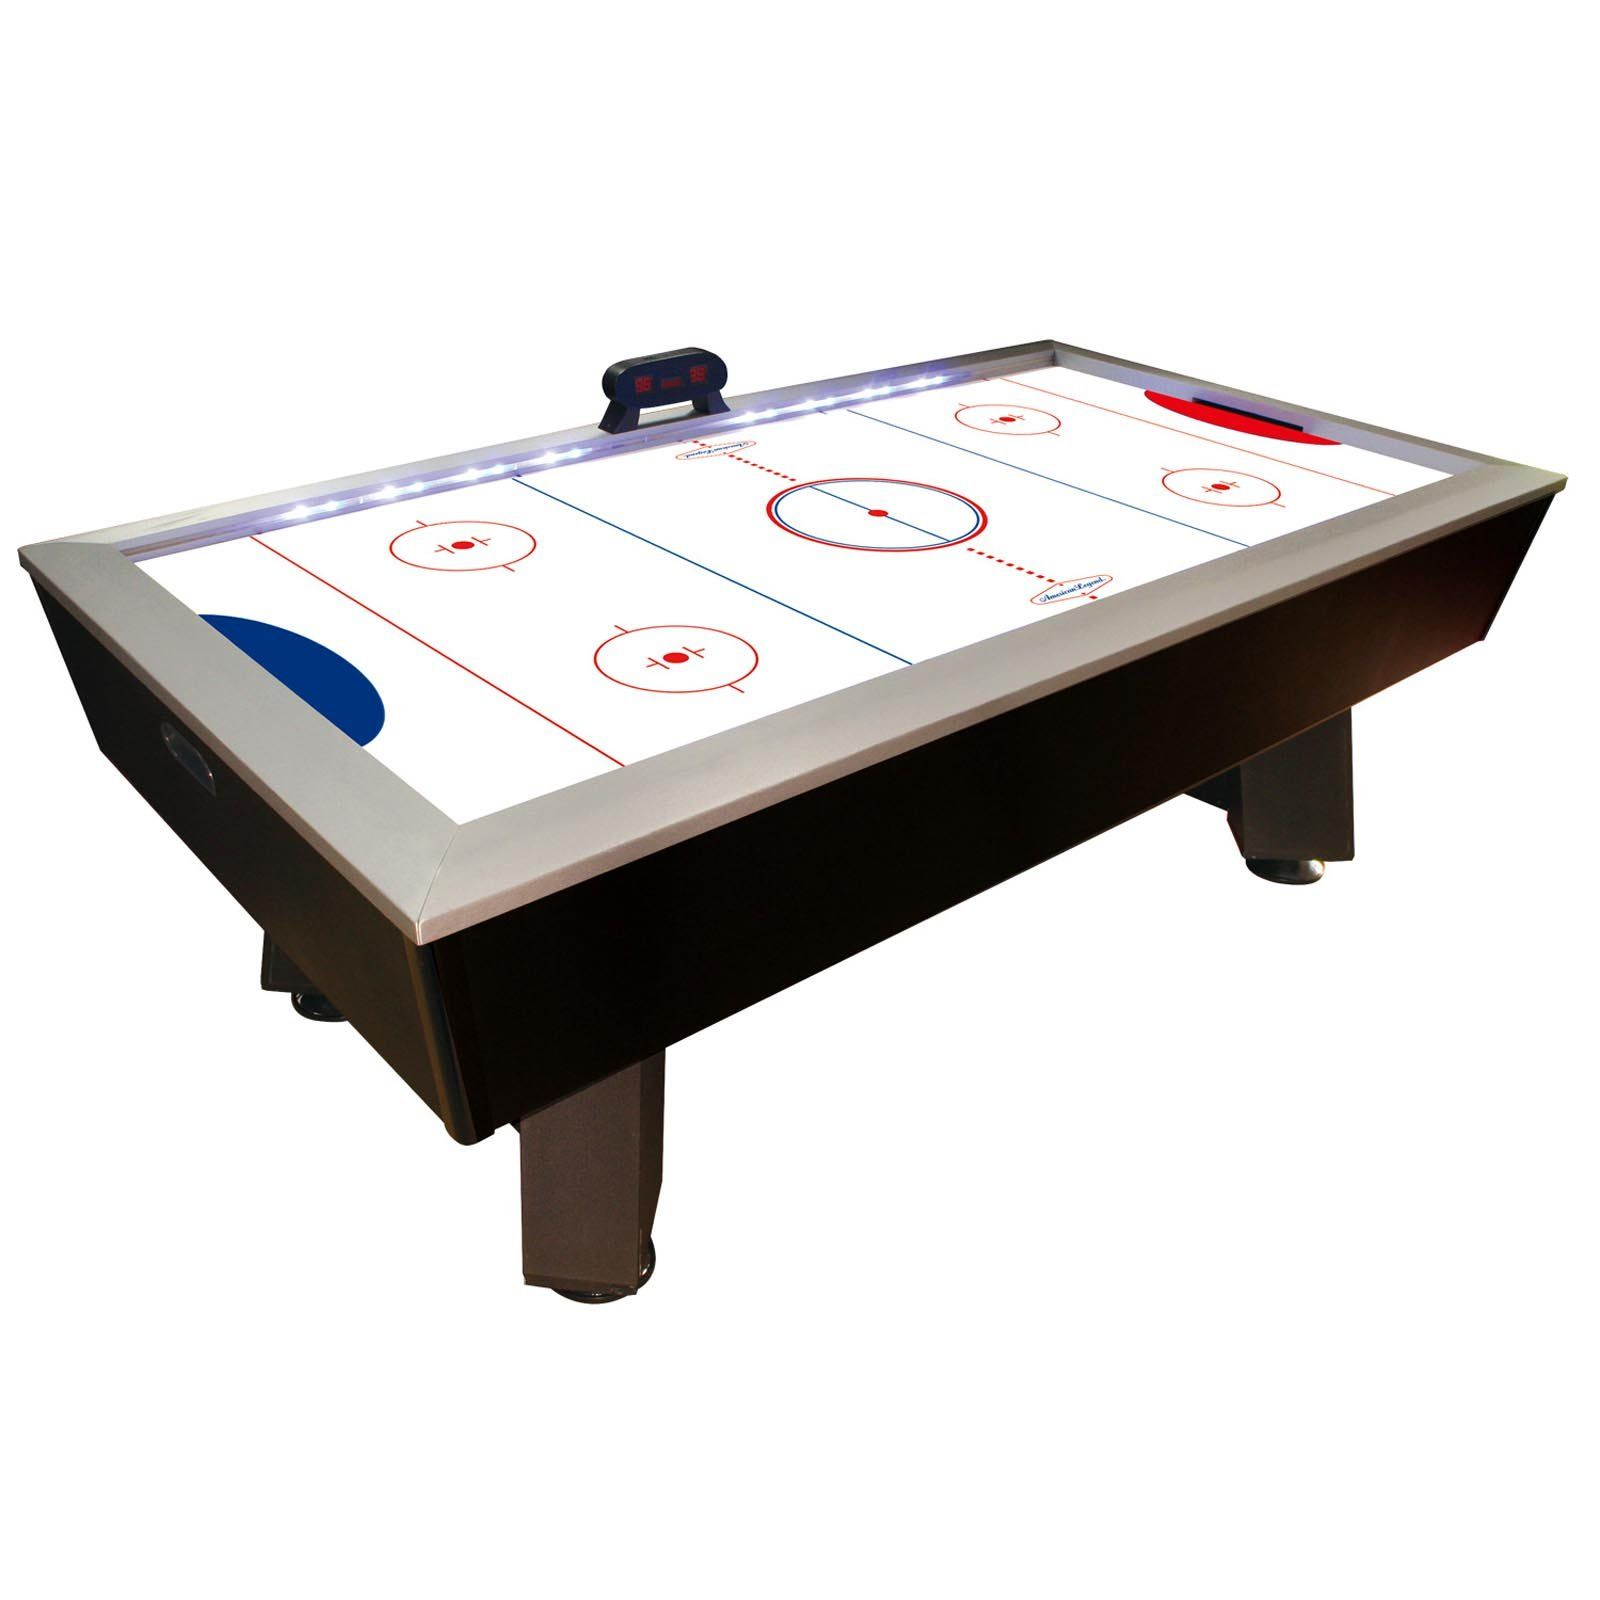 Air Hockey Air hockey, Air hockey table, Game room tables